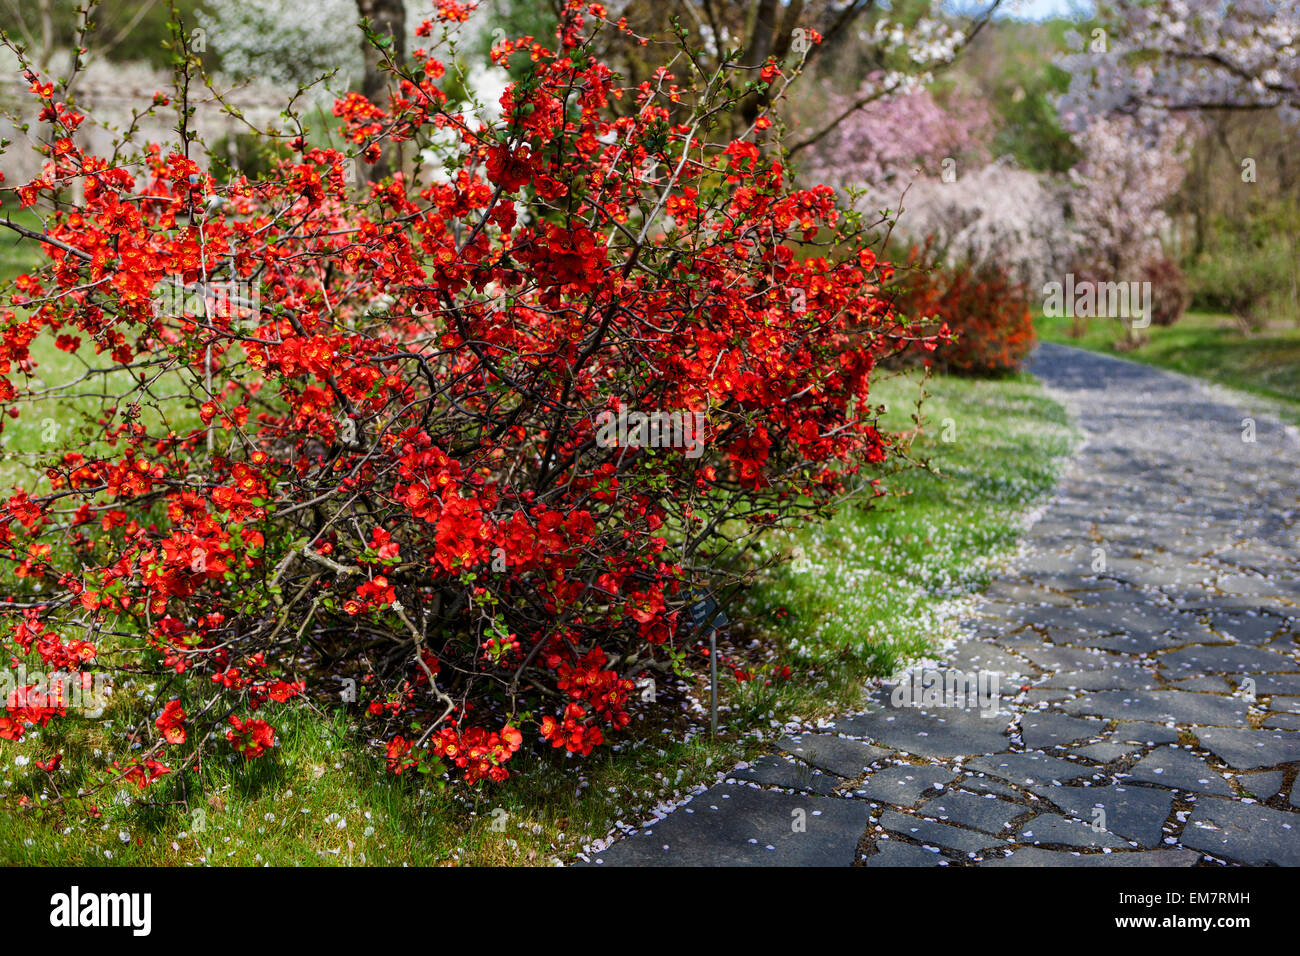 Blooming japanese quince Chaenomeles japonica in a garden, under flowering cherry tree, falling petals - Stock Image